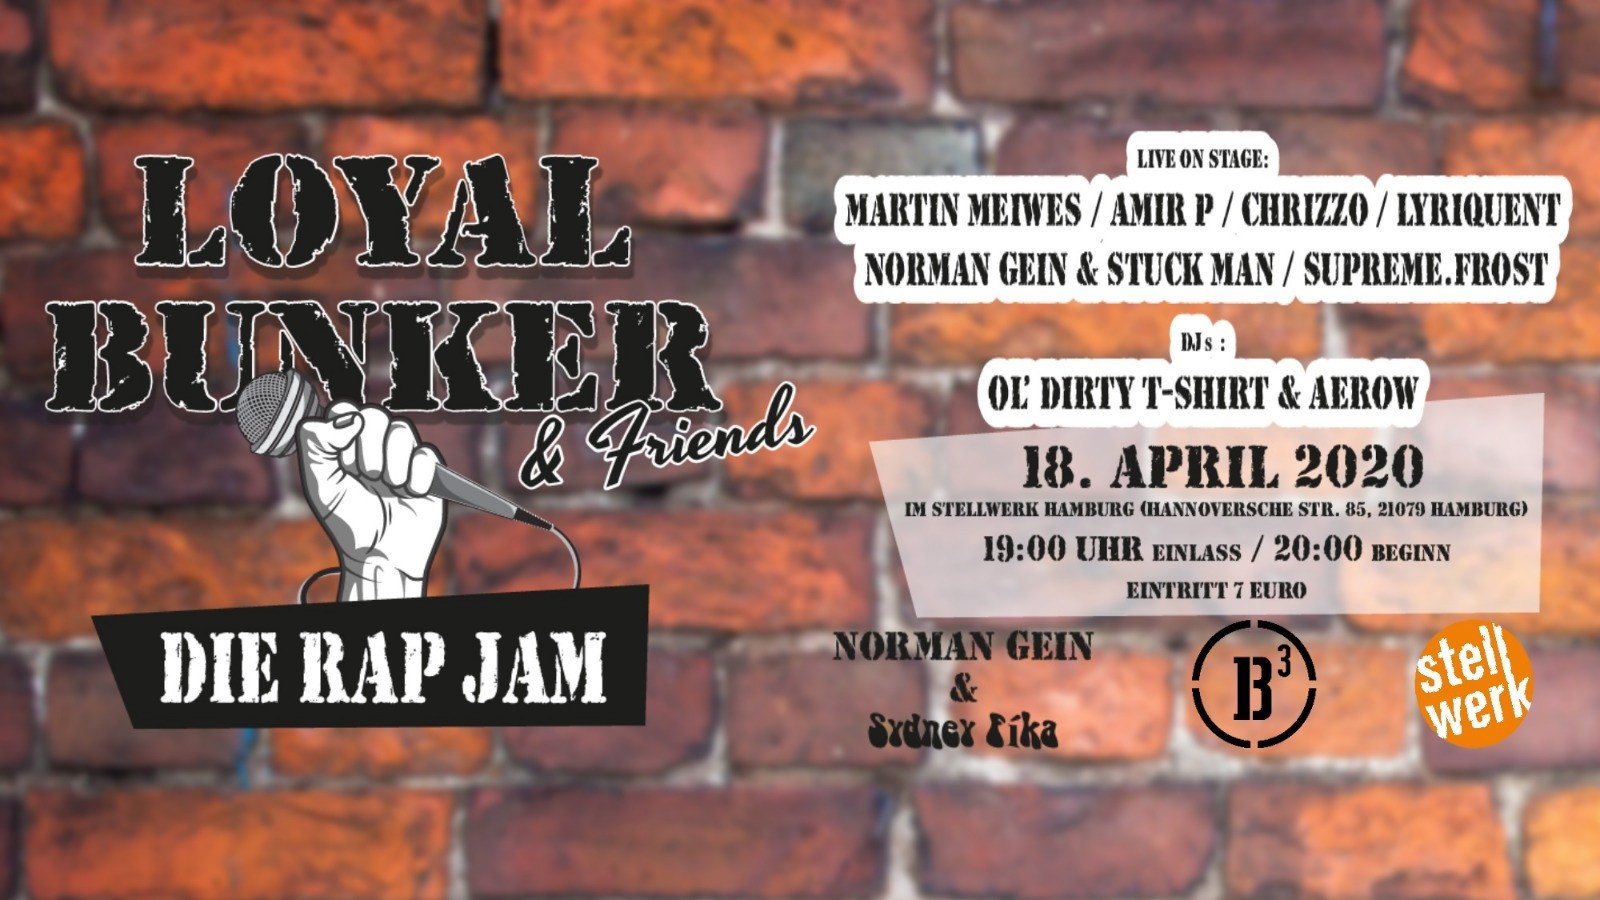 Verschoben!!! Loyal Bunker & Friends - Die Rap Jam